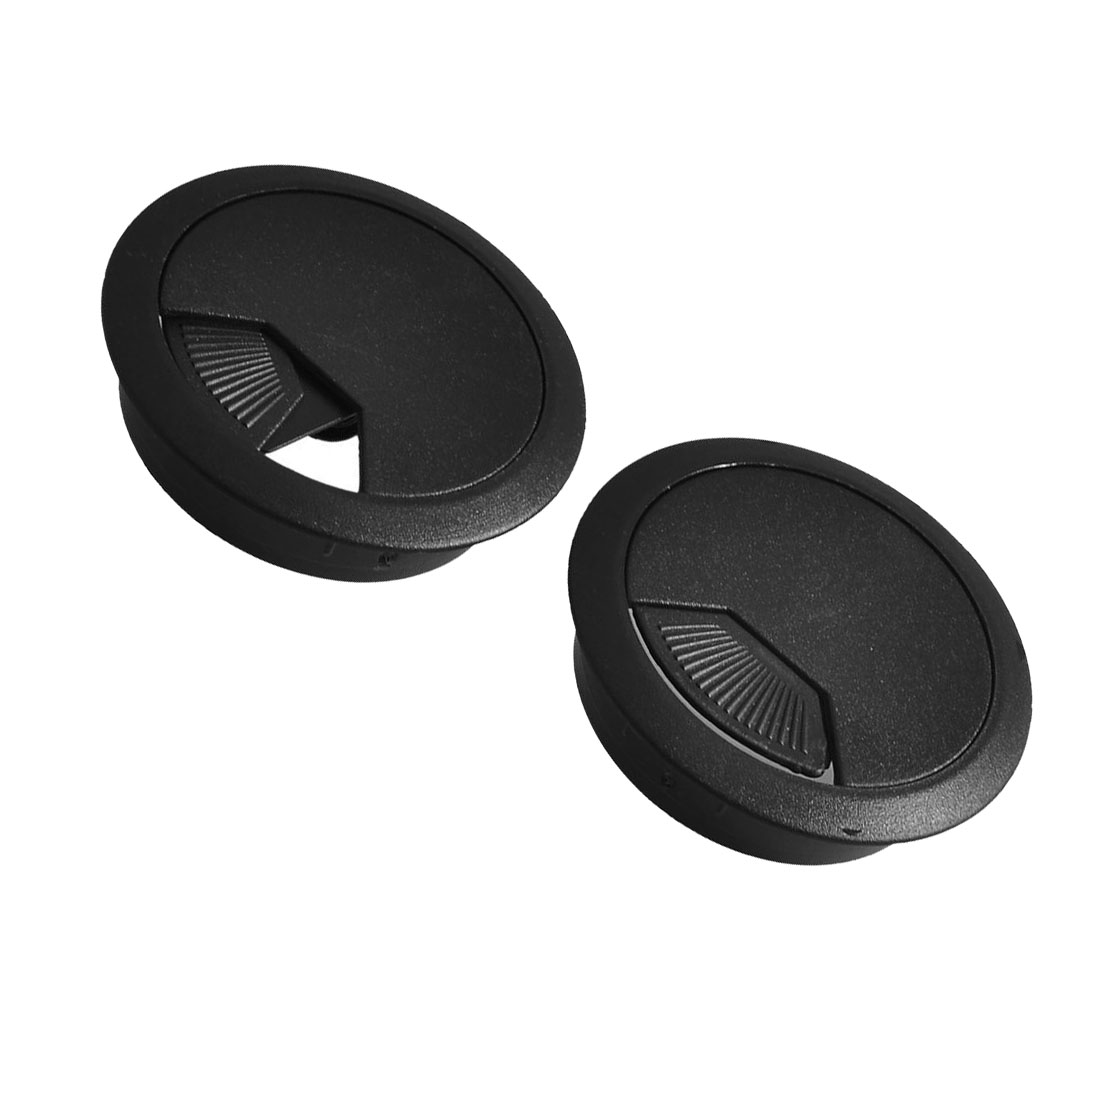 2 Pcs 50mm Diameter Desk Wire Cord Cable Grommets Hole Cover Black Buy One Give One Furniture